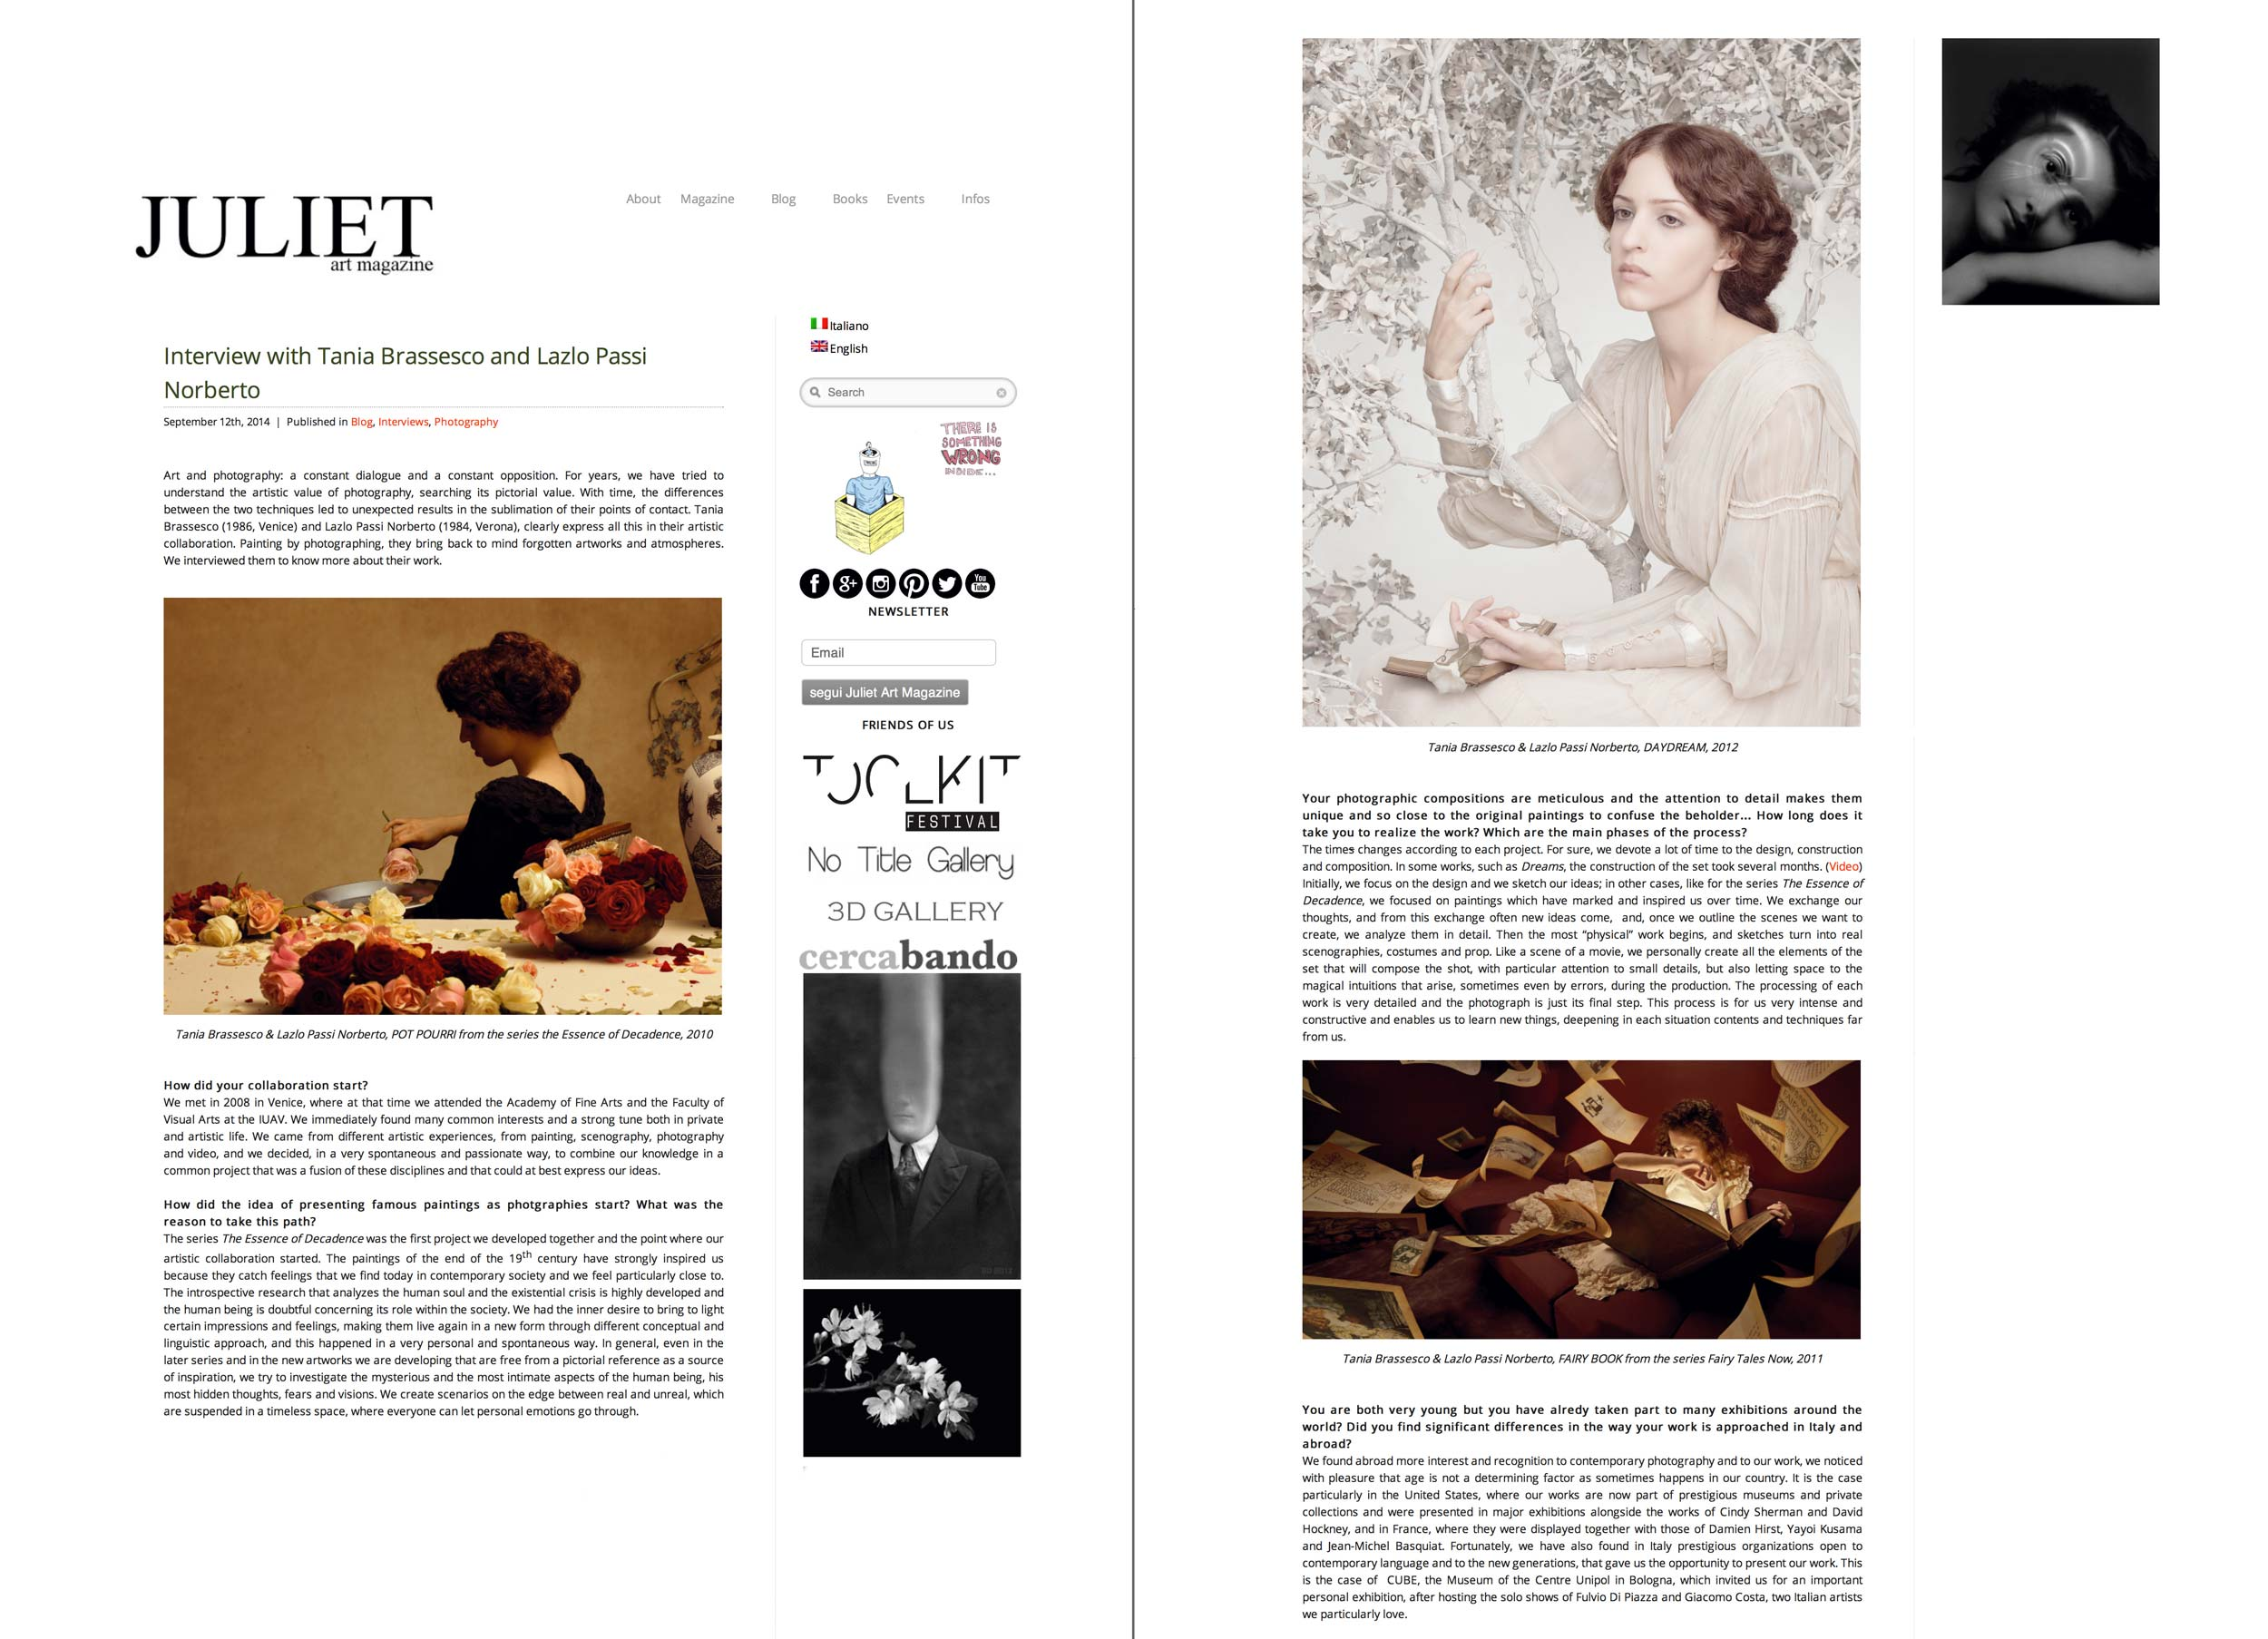 Tania-and-Lazlo-interview-on-Juliet.jpg